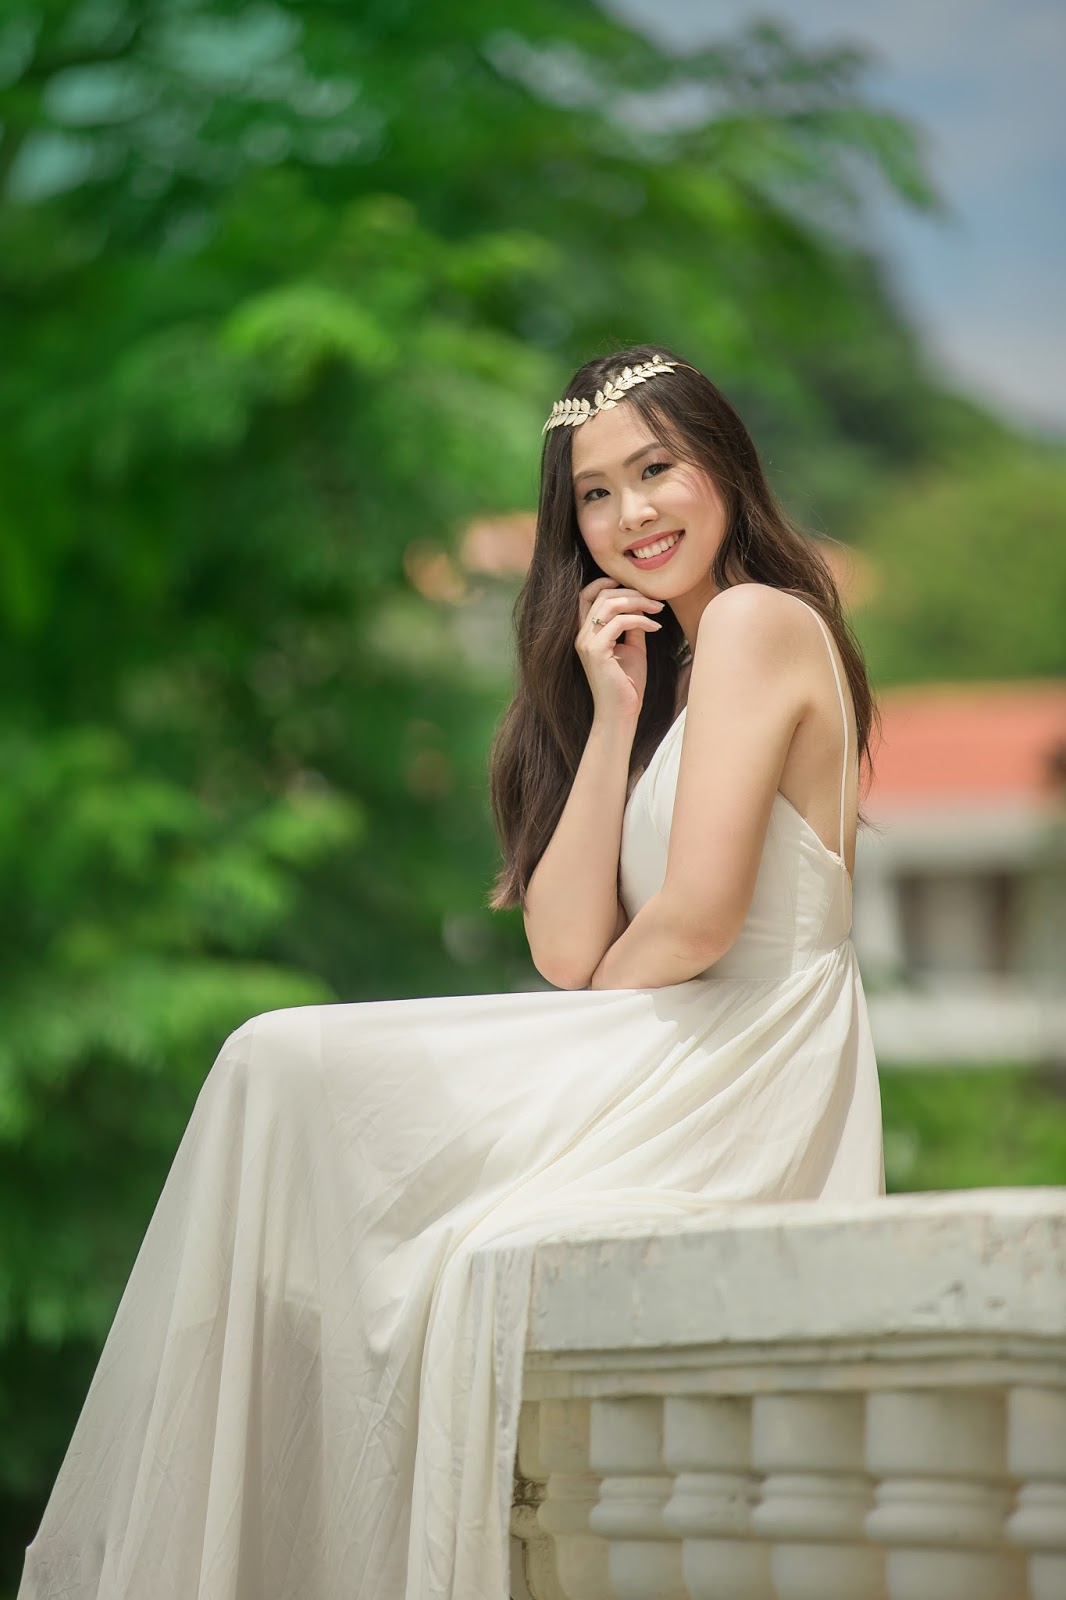 Mom-About-Town: Confidently beautiful with a heart at 18